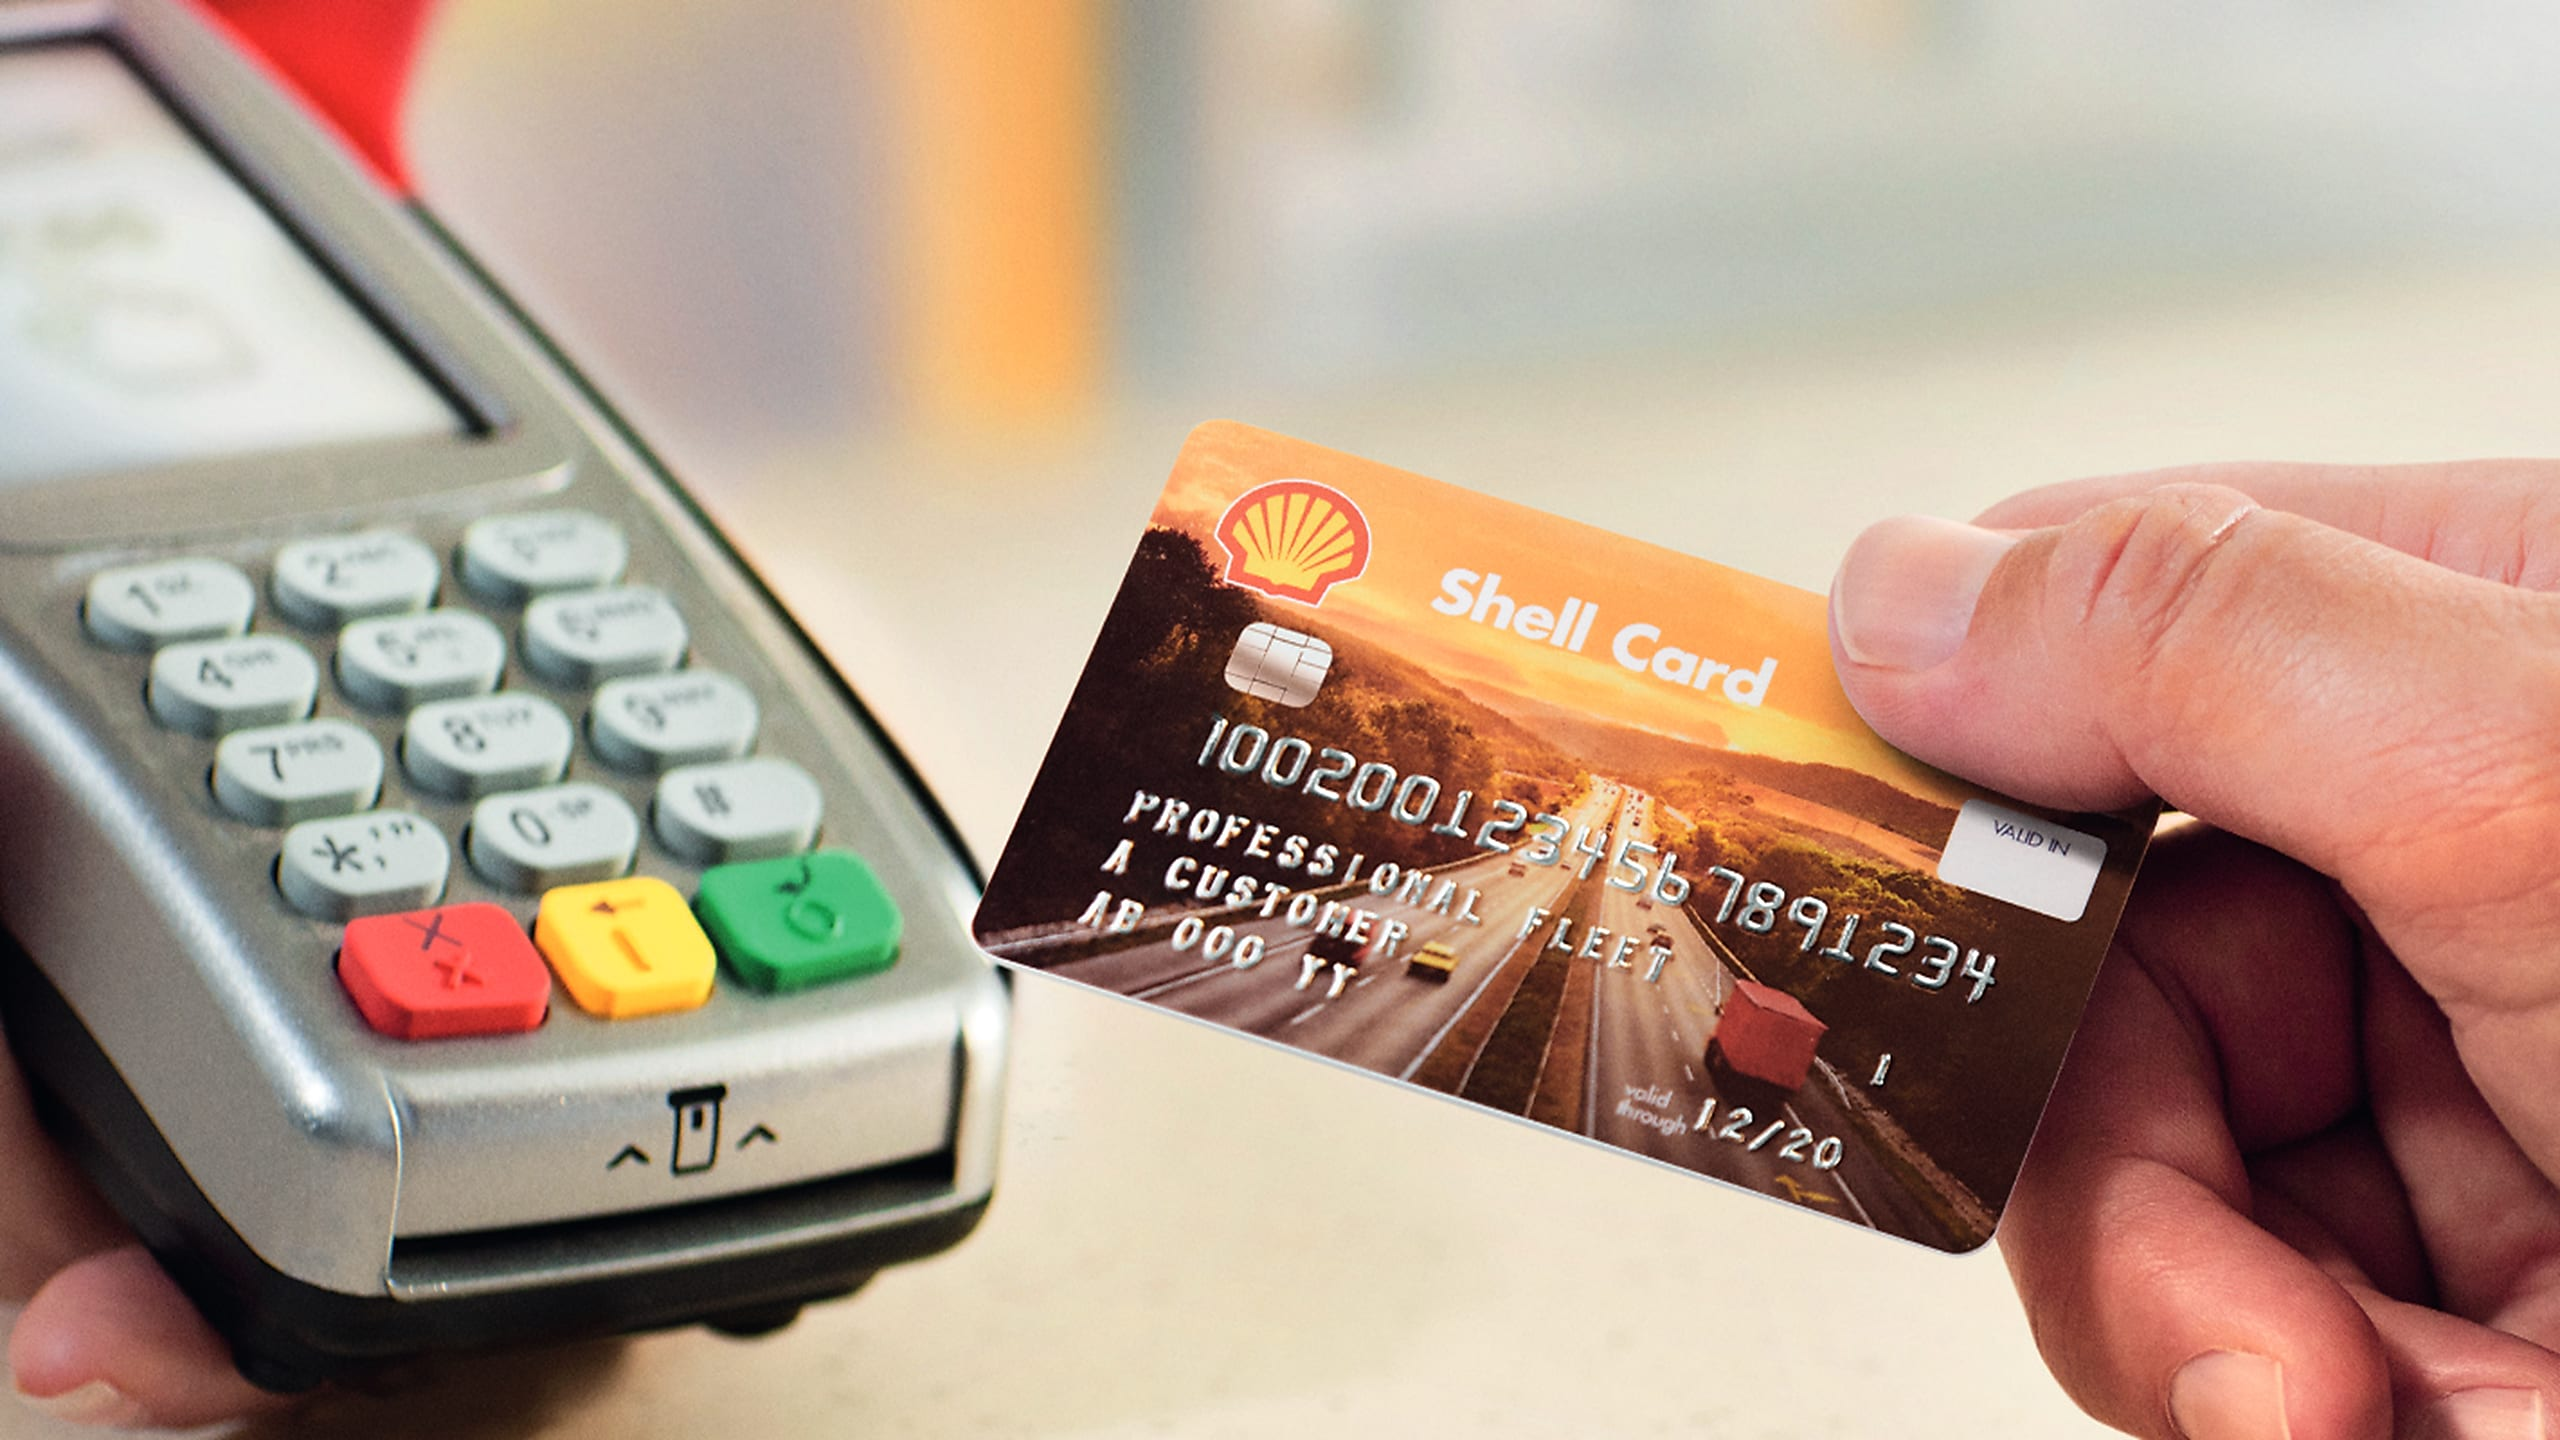 exclusive offer for shell fleet card customers  shell